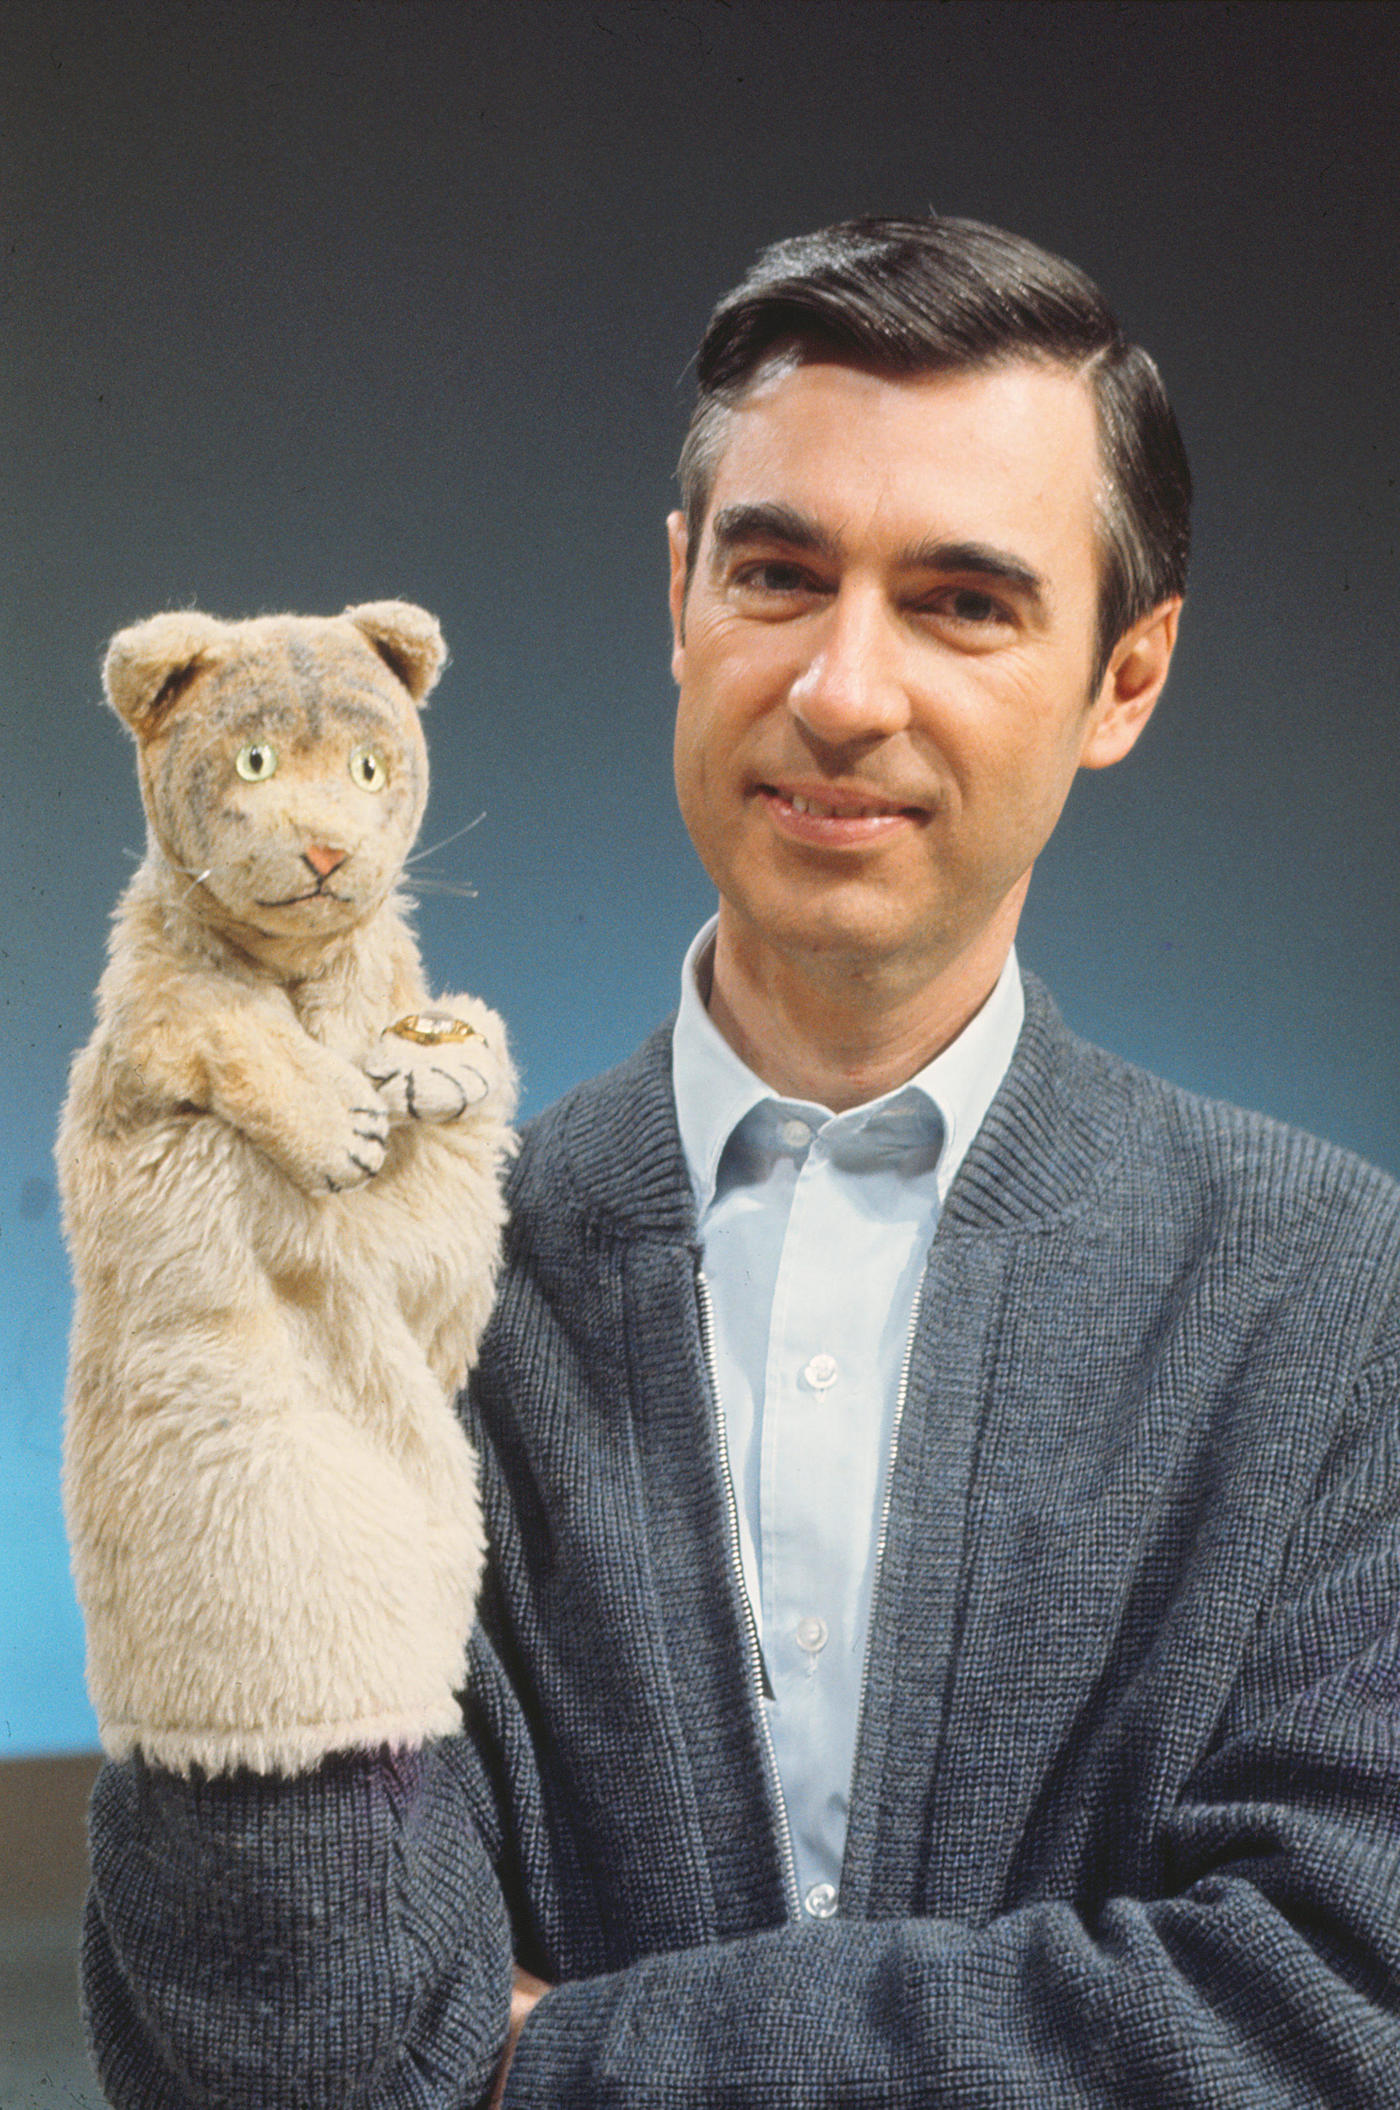 The Catholics In Mister Rogers Neighborhood Angelus News